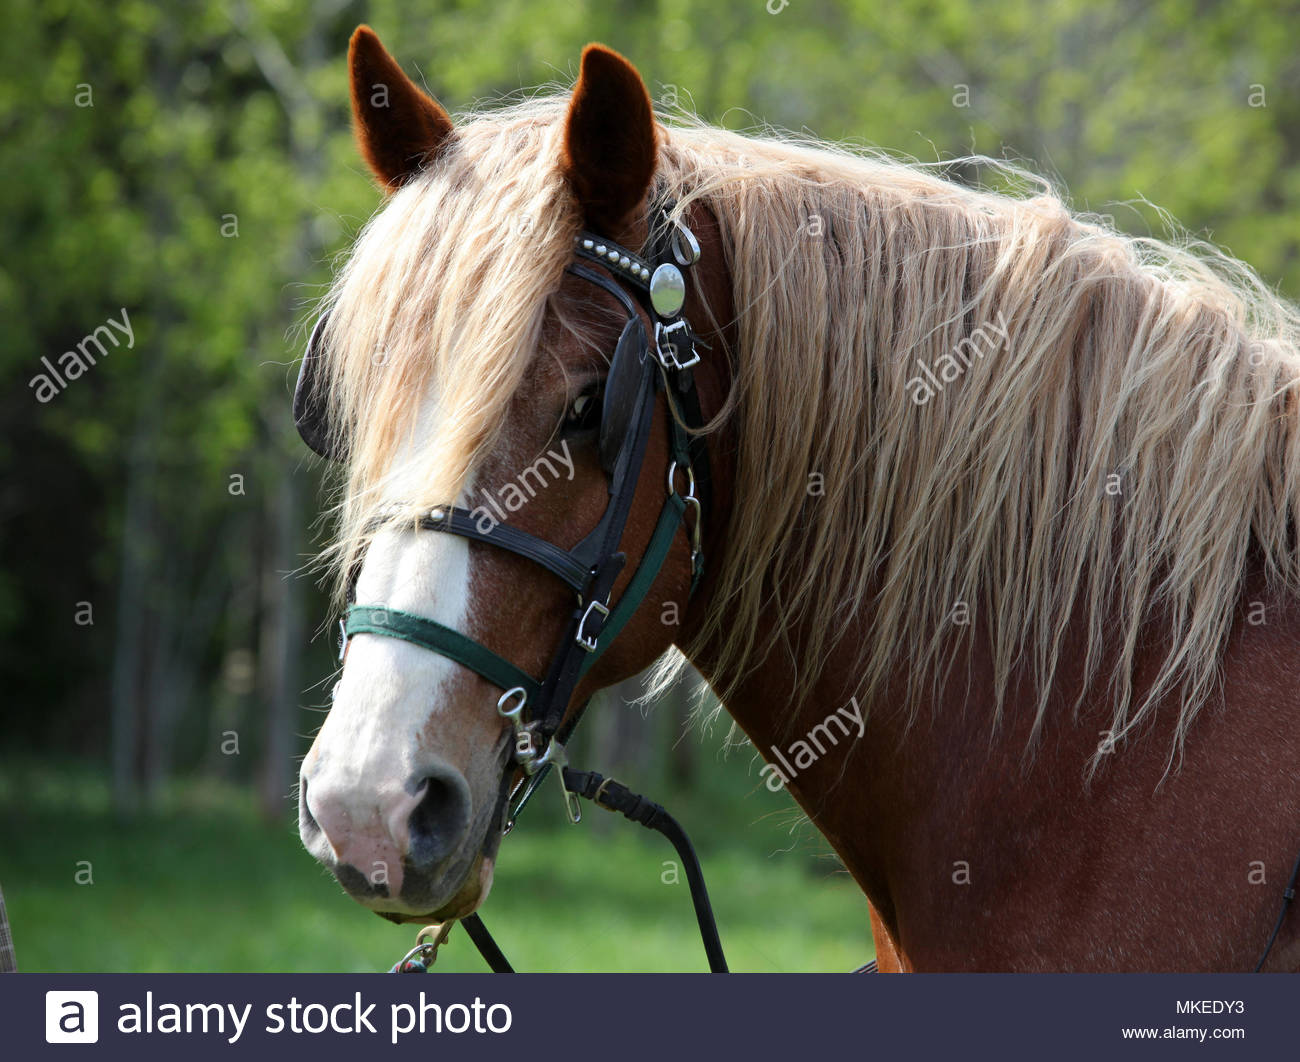 Guelph Ontario Canada Close Up Of The Head Of A Belgian Draft Horse With Blinders Stock Photo Alamy